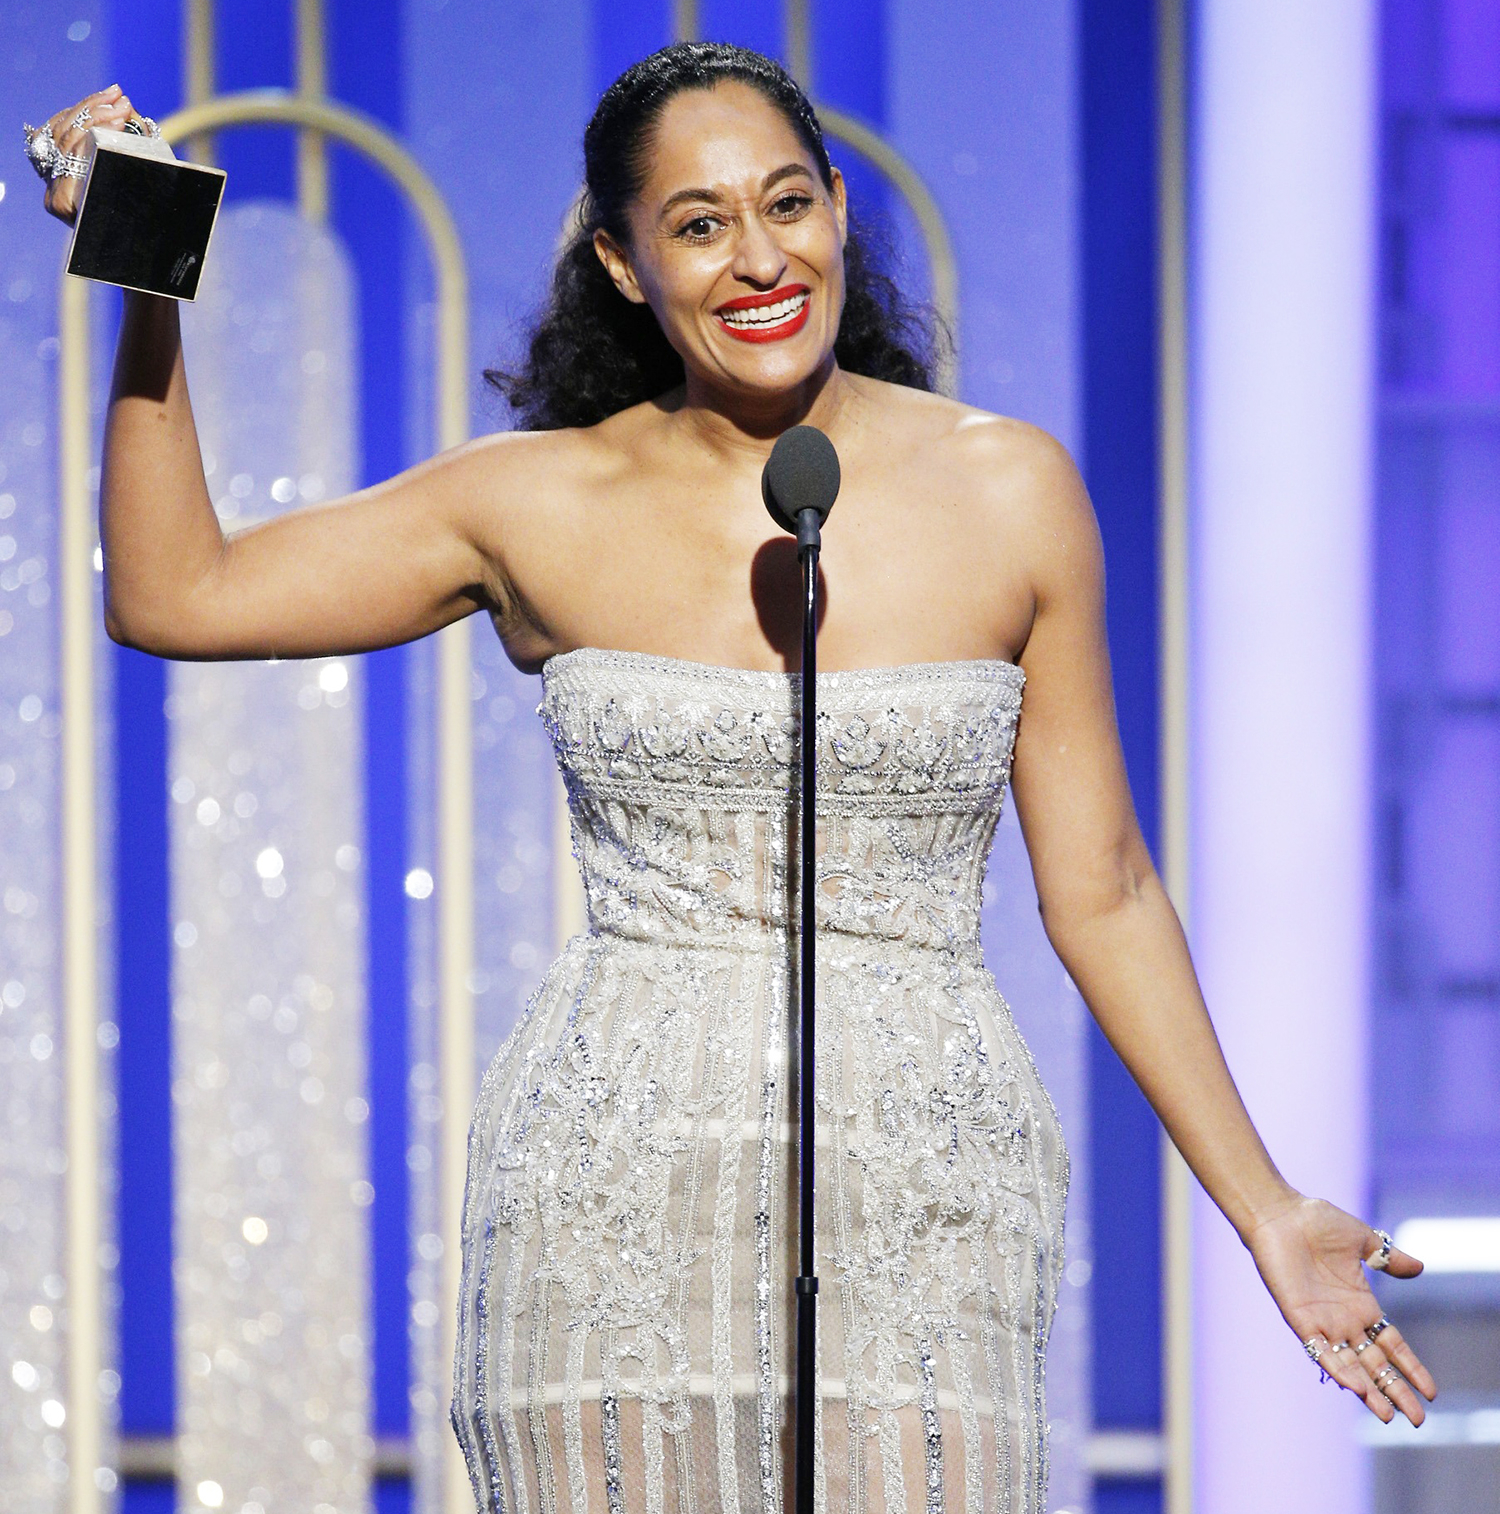 Tracee Ellis Ross accepts the award for Best Actress in a Television Series — Musical or Comedy for her role in 'Black-ish' during the 74th Annual Golden Globe Awards at the Beverly Hilton Hotel on Jan. 8, 2017, in Beverly Hills.